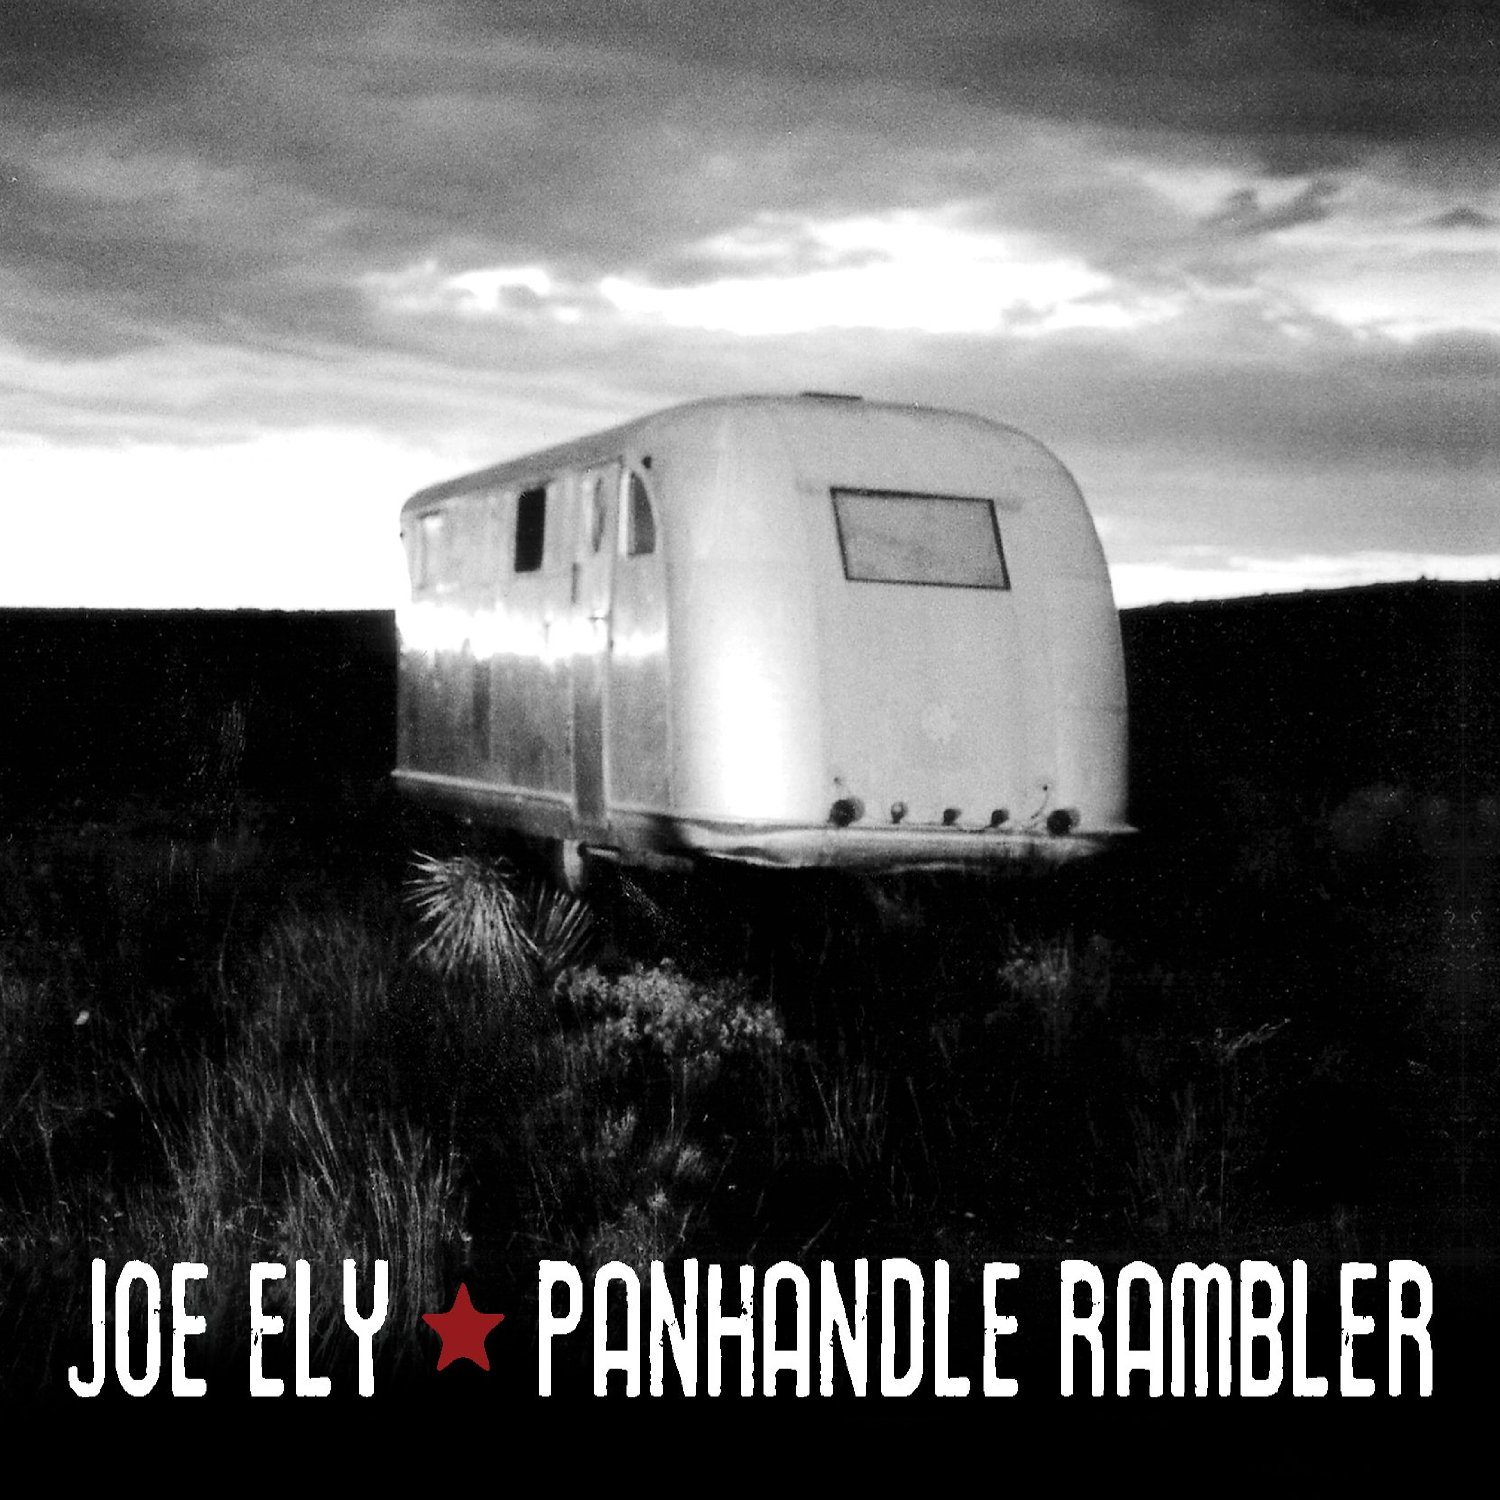 Joe Ely's Panhandle Rambler